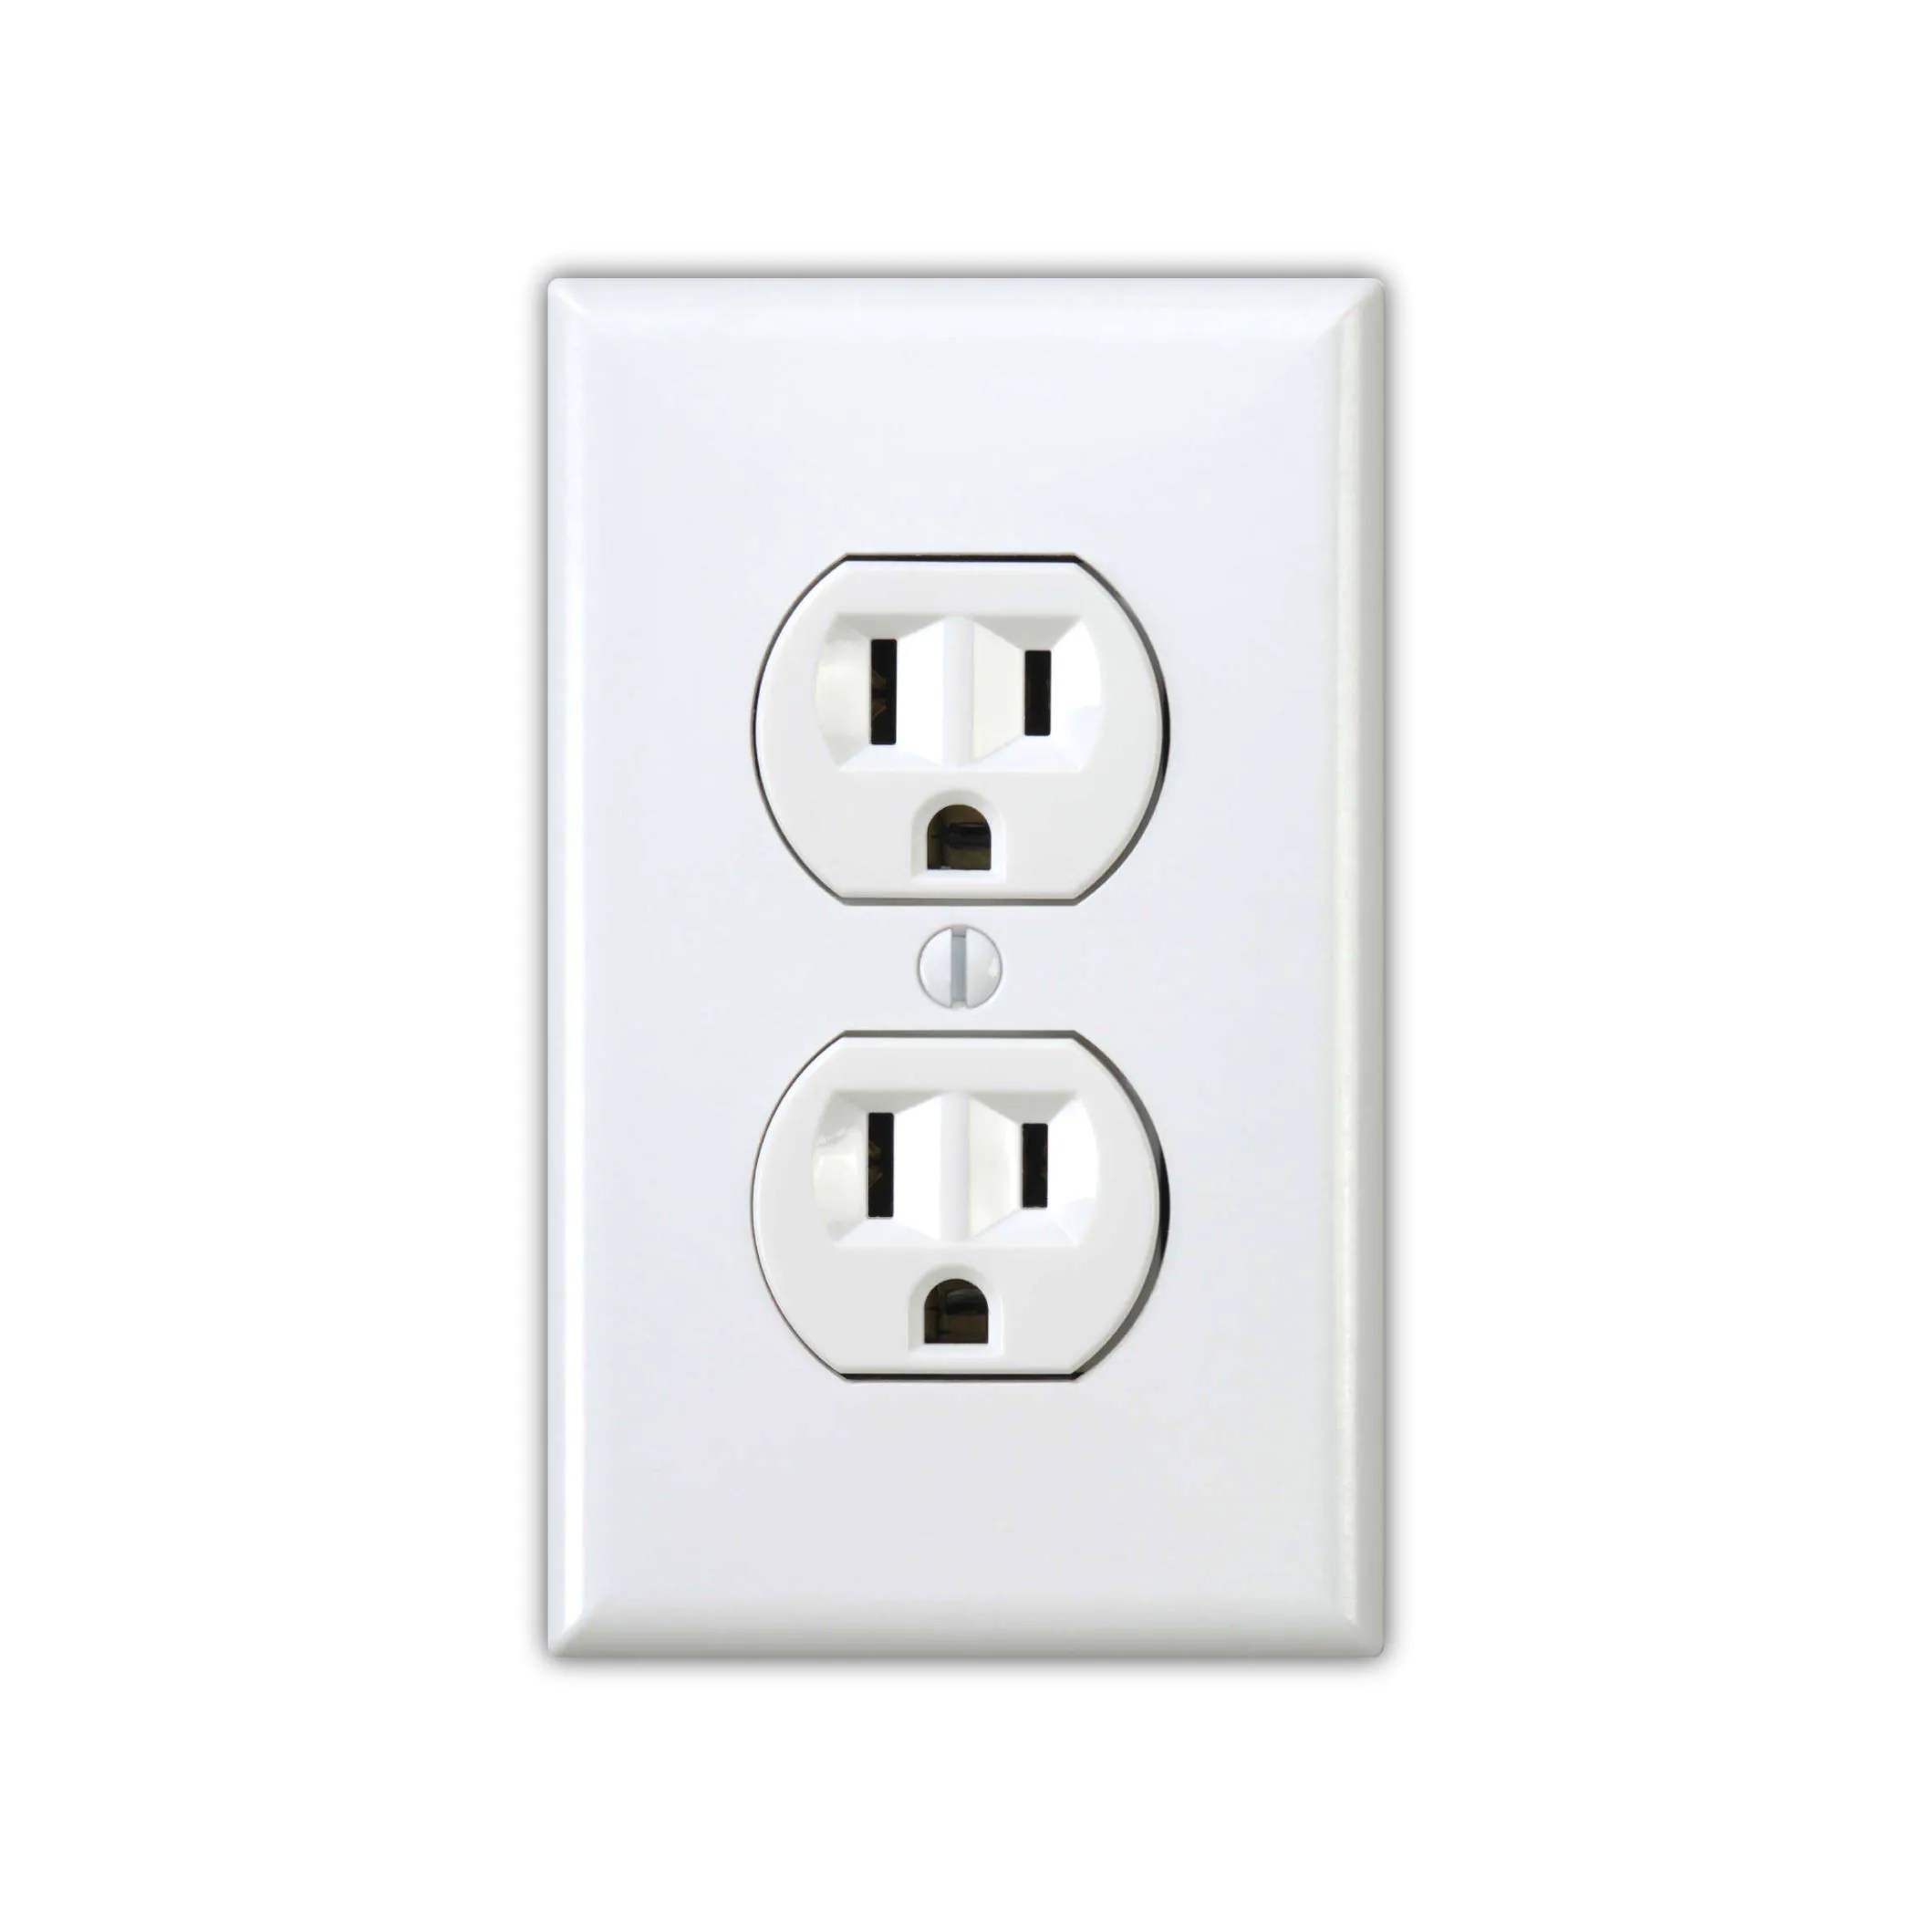 electrical plug x and y direct tv wiring diagram fake wall power outlet funny joke prank vinyl decal sticker